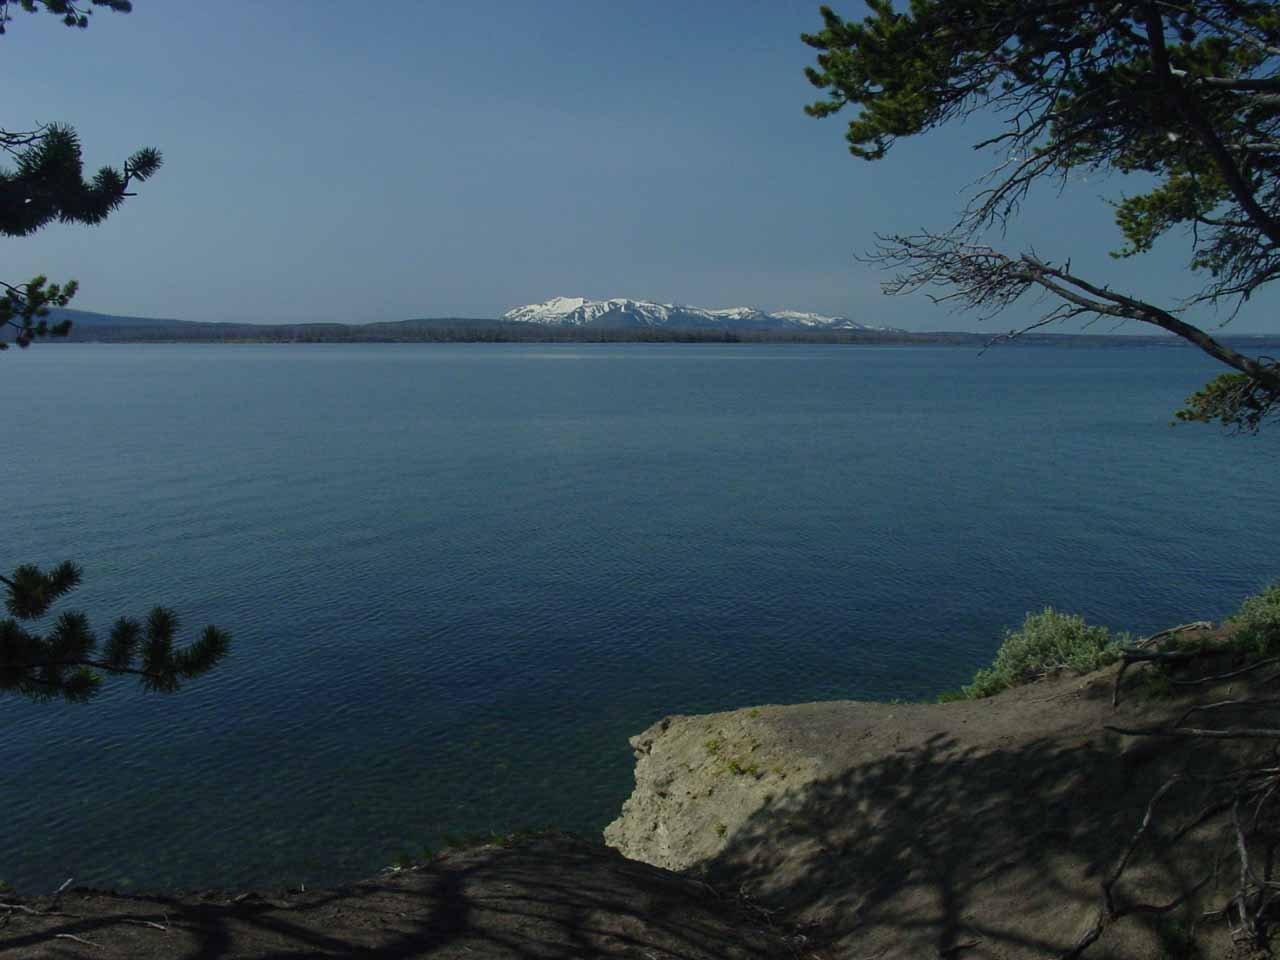 Further to the northeast of the Bechler Backcountry was the vast Yellowstone Lake, which was said to be tilting in one direction due to the bulge of magma beneath the Yellowstone Supervolcano